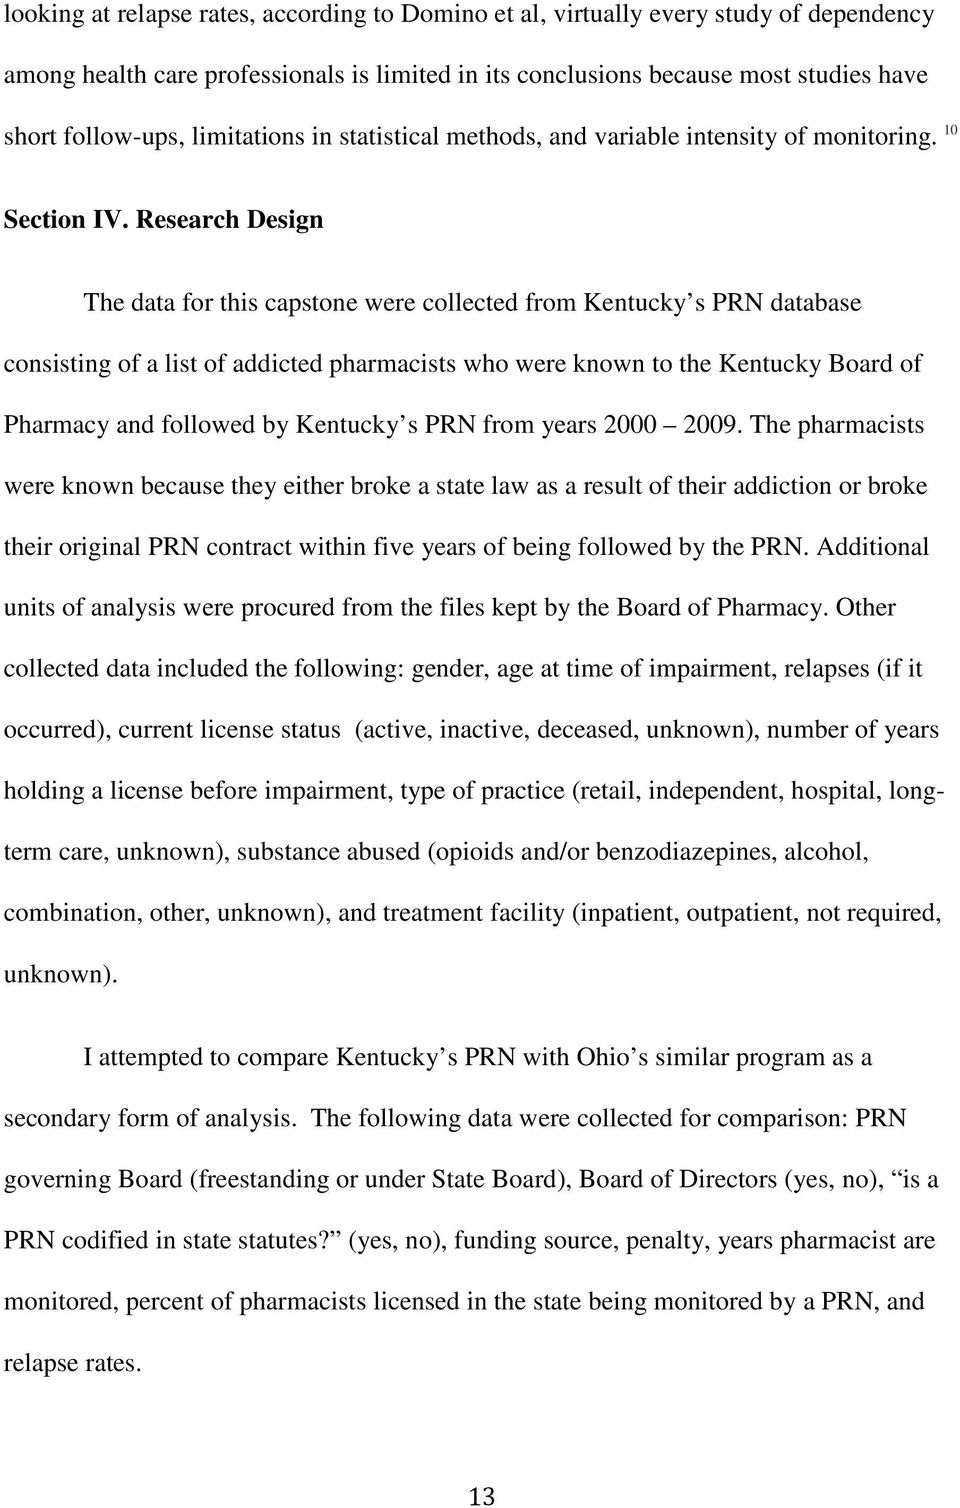 Research Design The data for this capstone were collected from Kentucky s PRN database consisting of a list of addicted pharmacists who were known to the Kentucky Board of Pharmacy and followed by